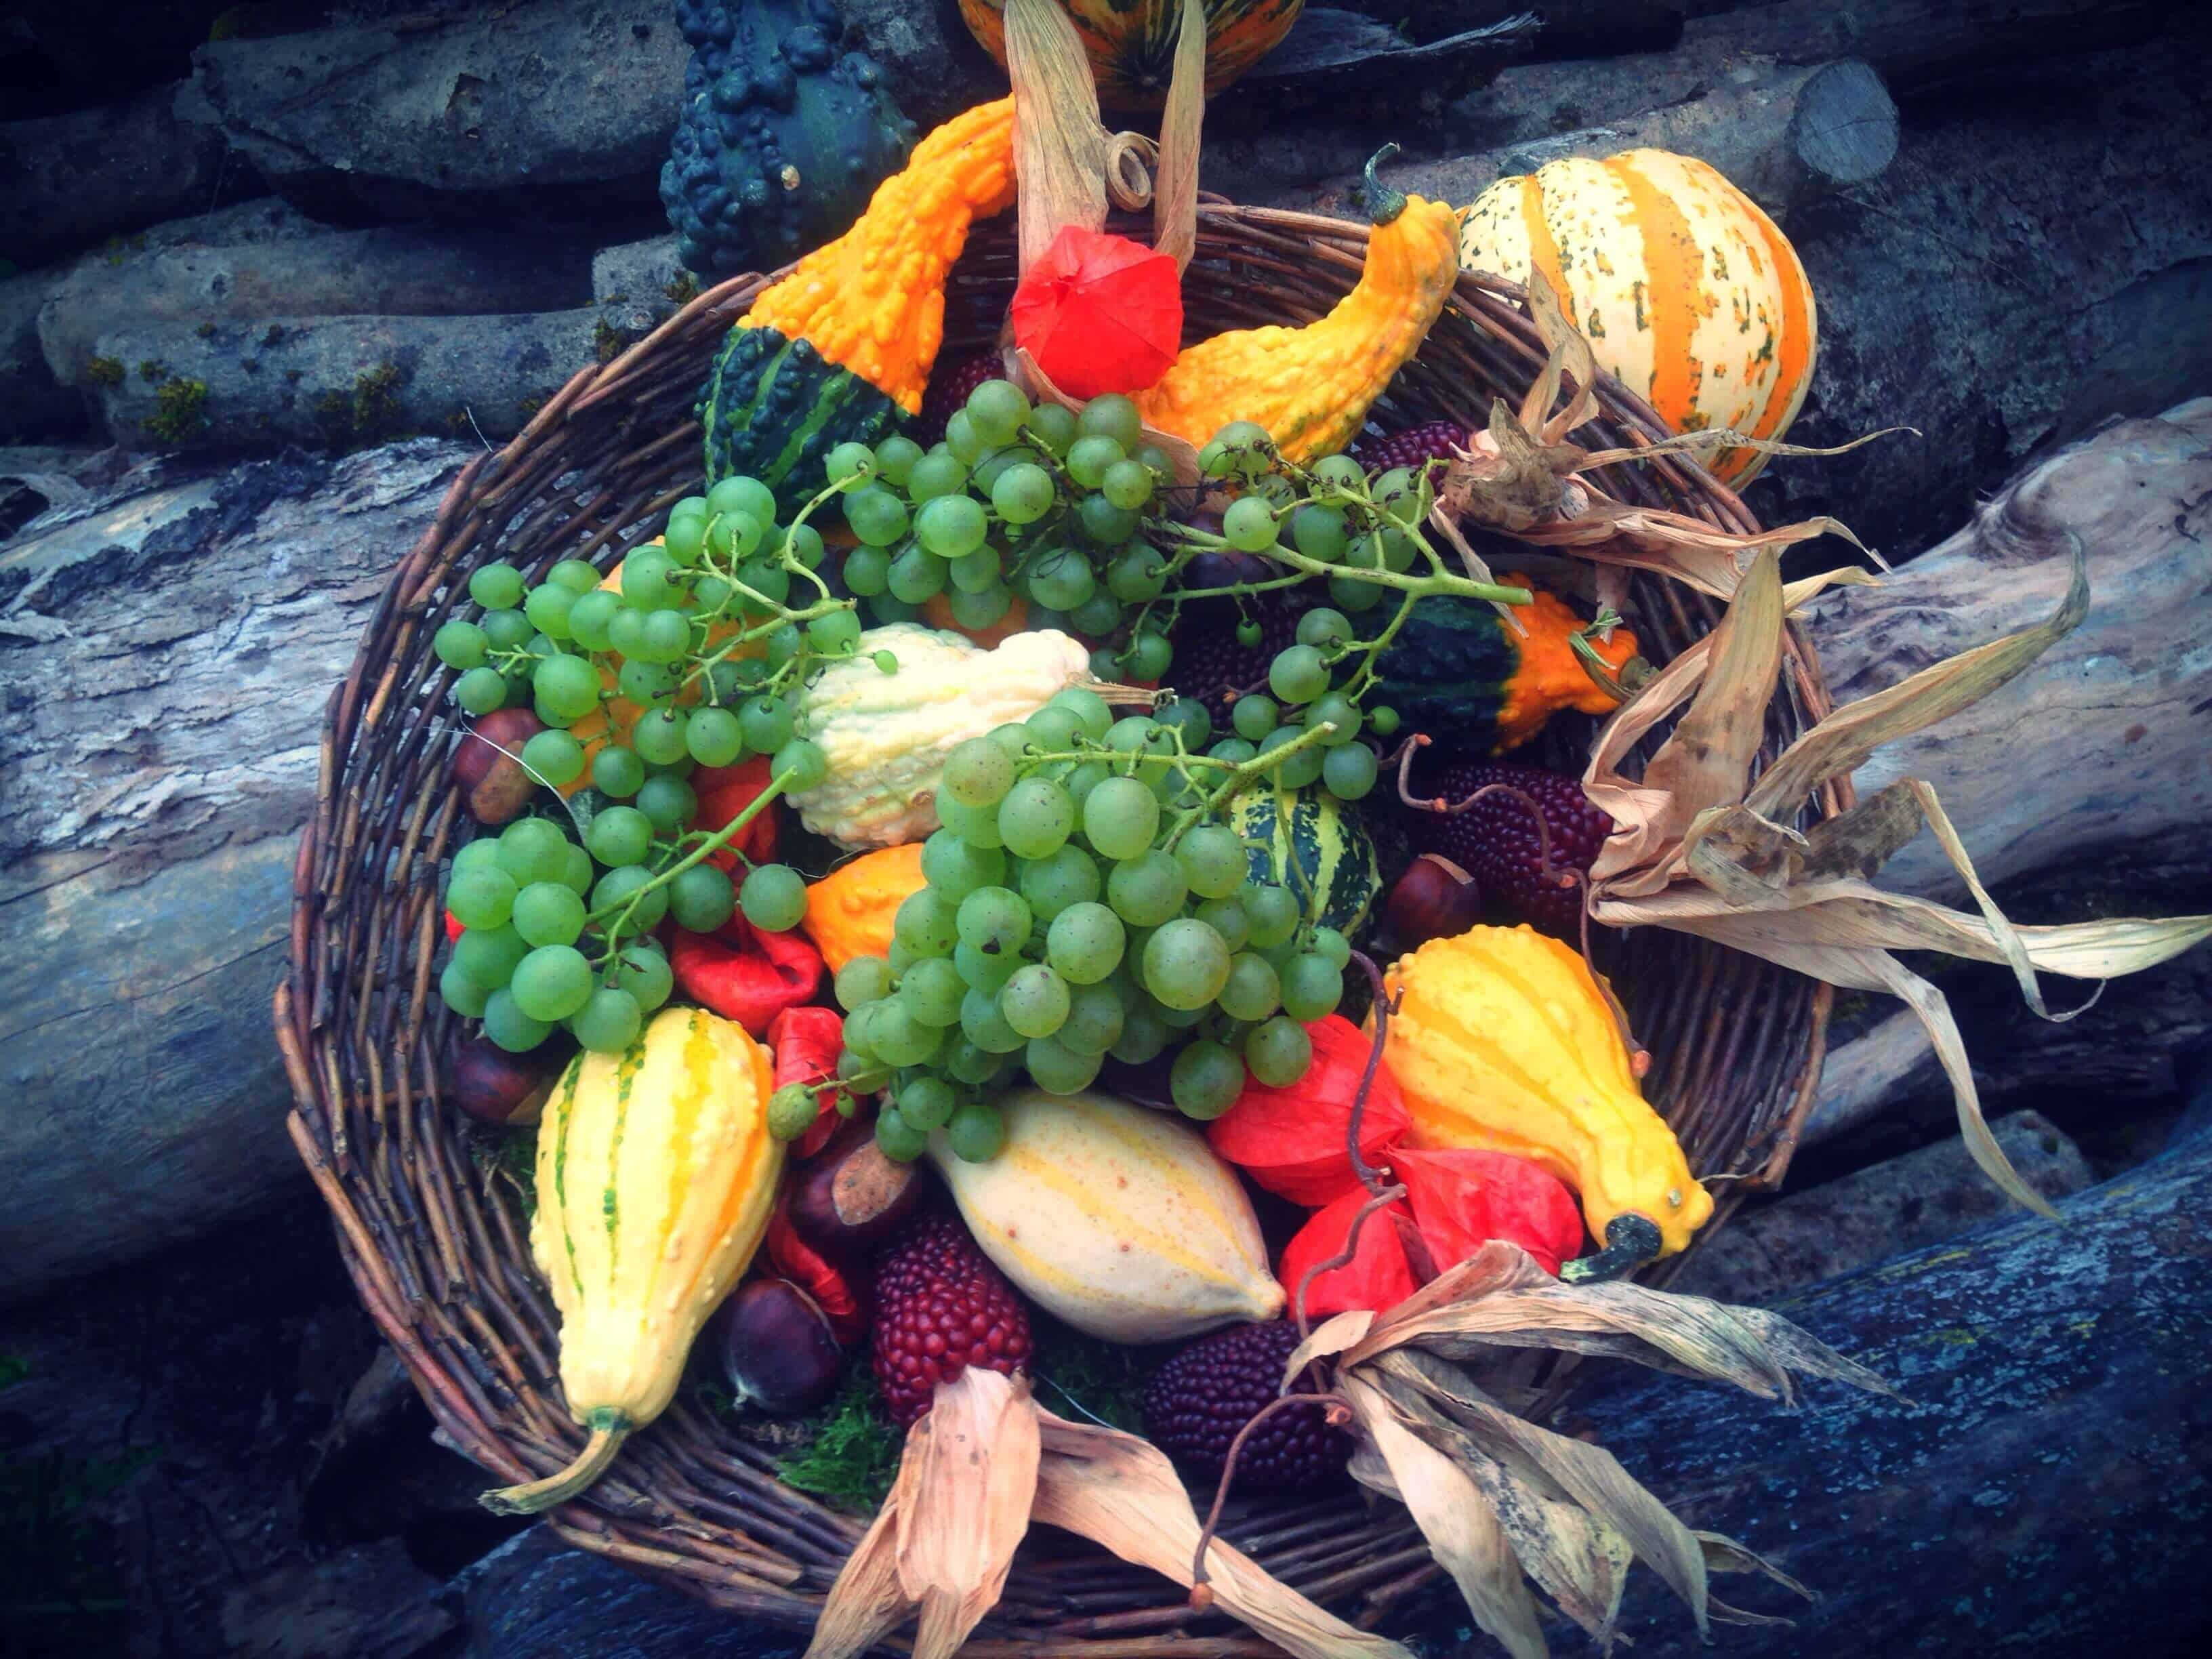 fall-fruits-and-vegetables-image